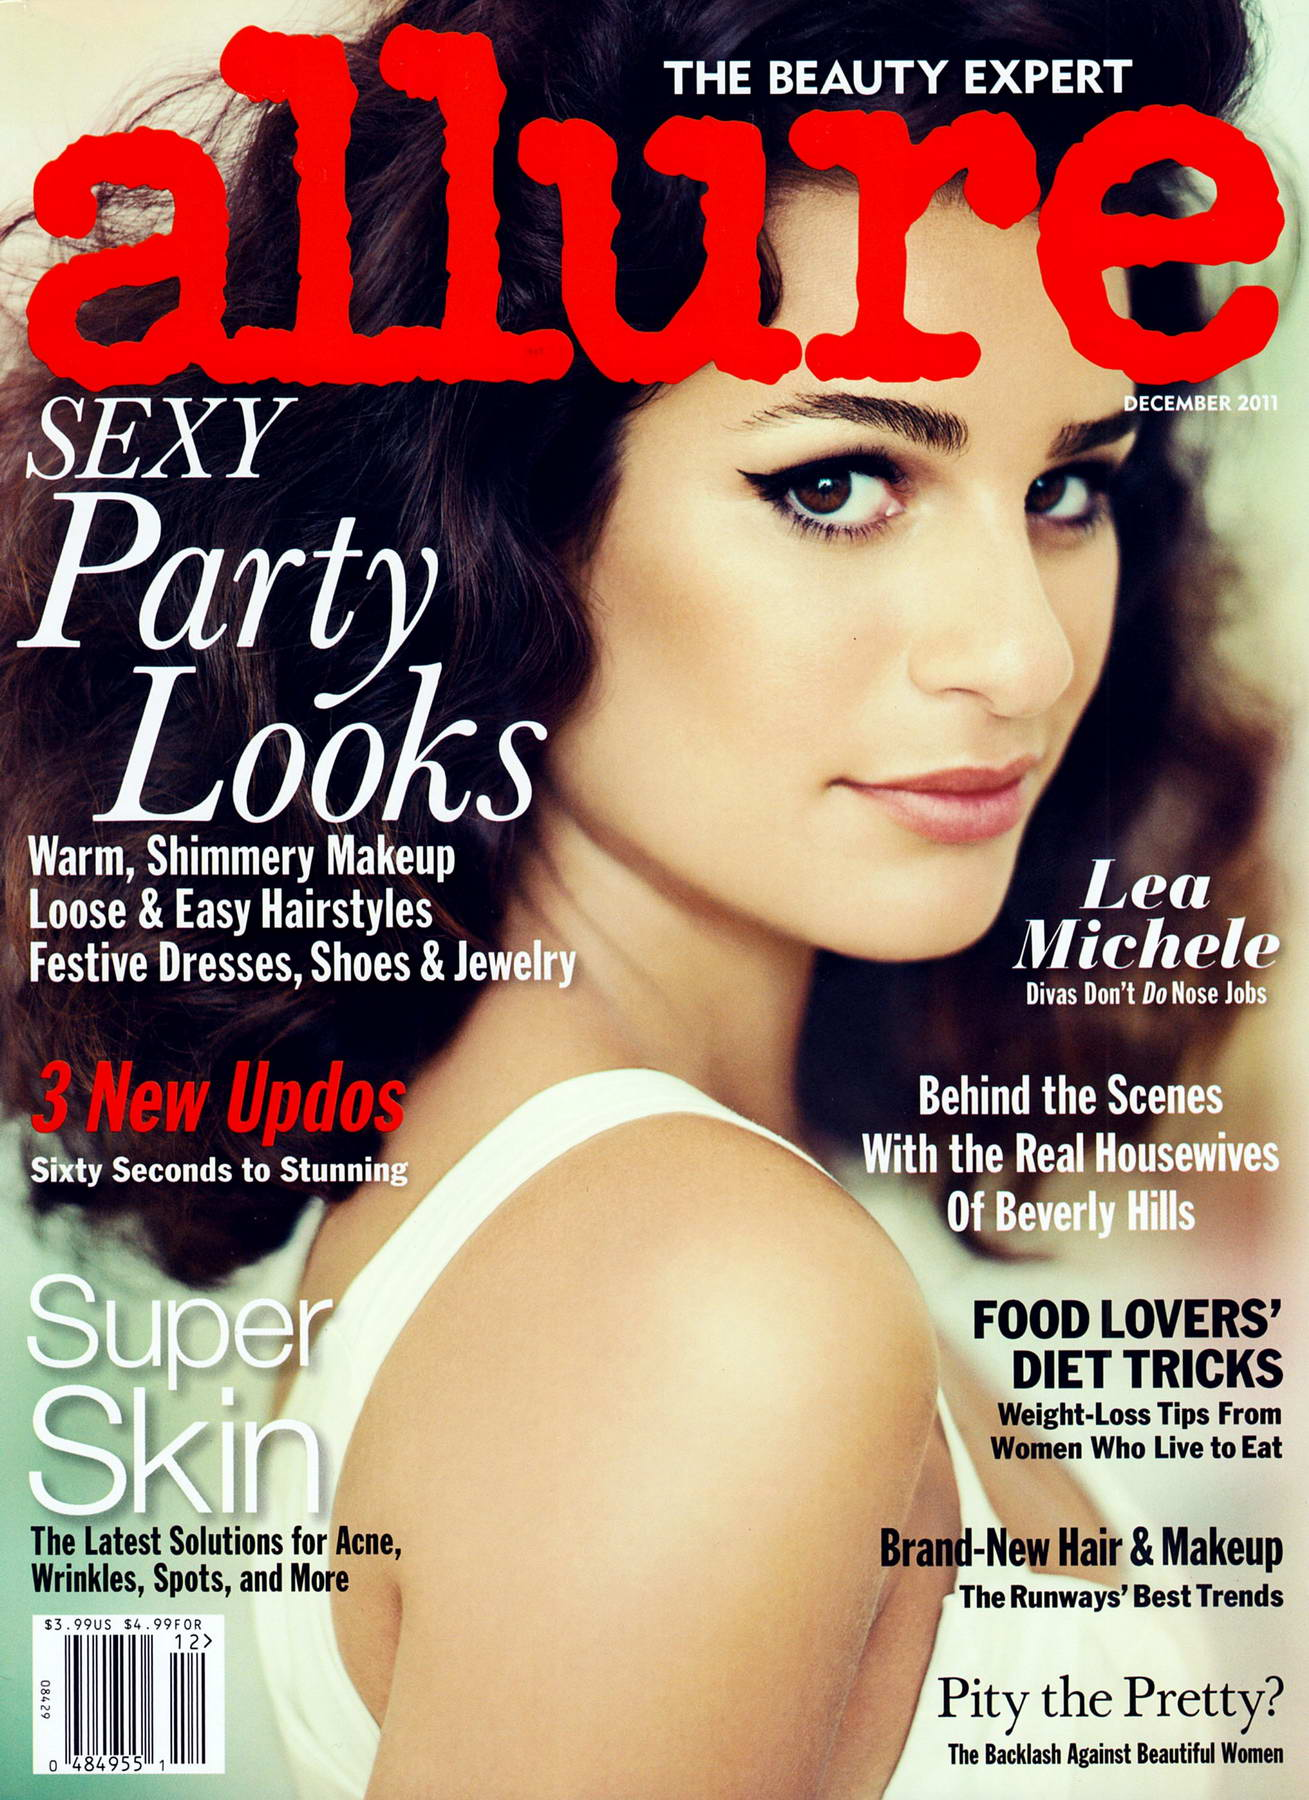 Lea Michele Covers Allure Magazine December 2011 Issue